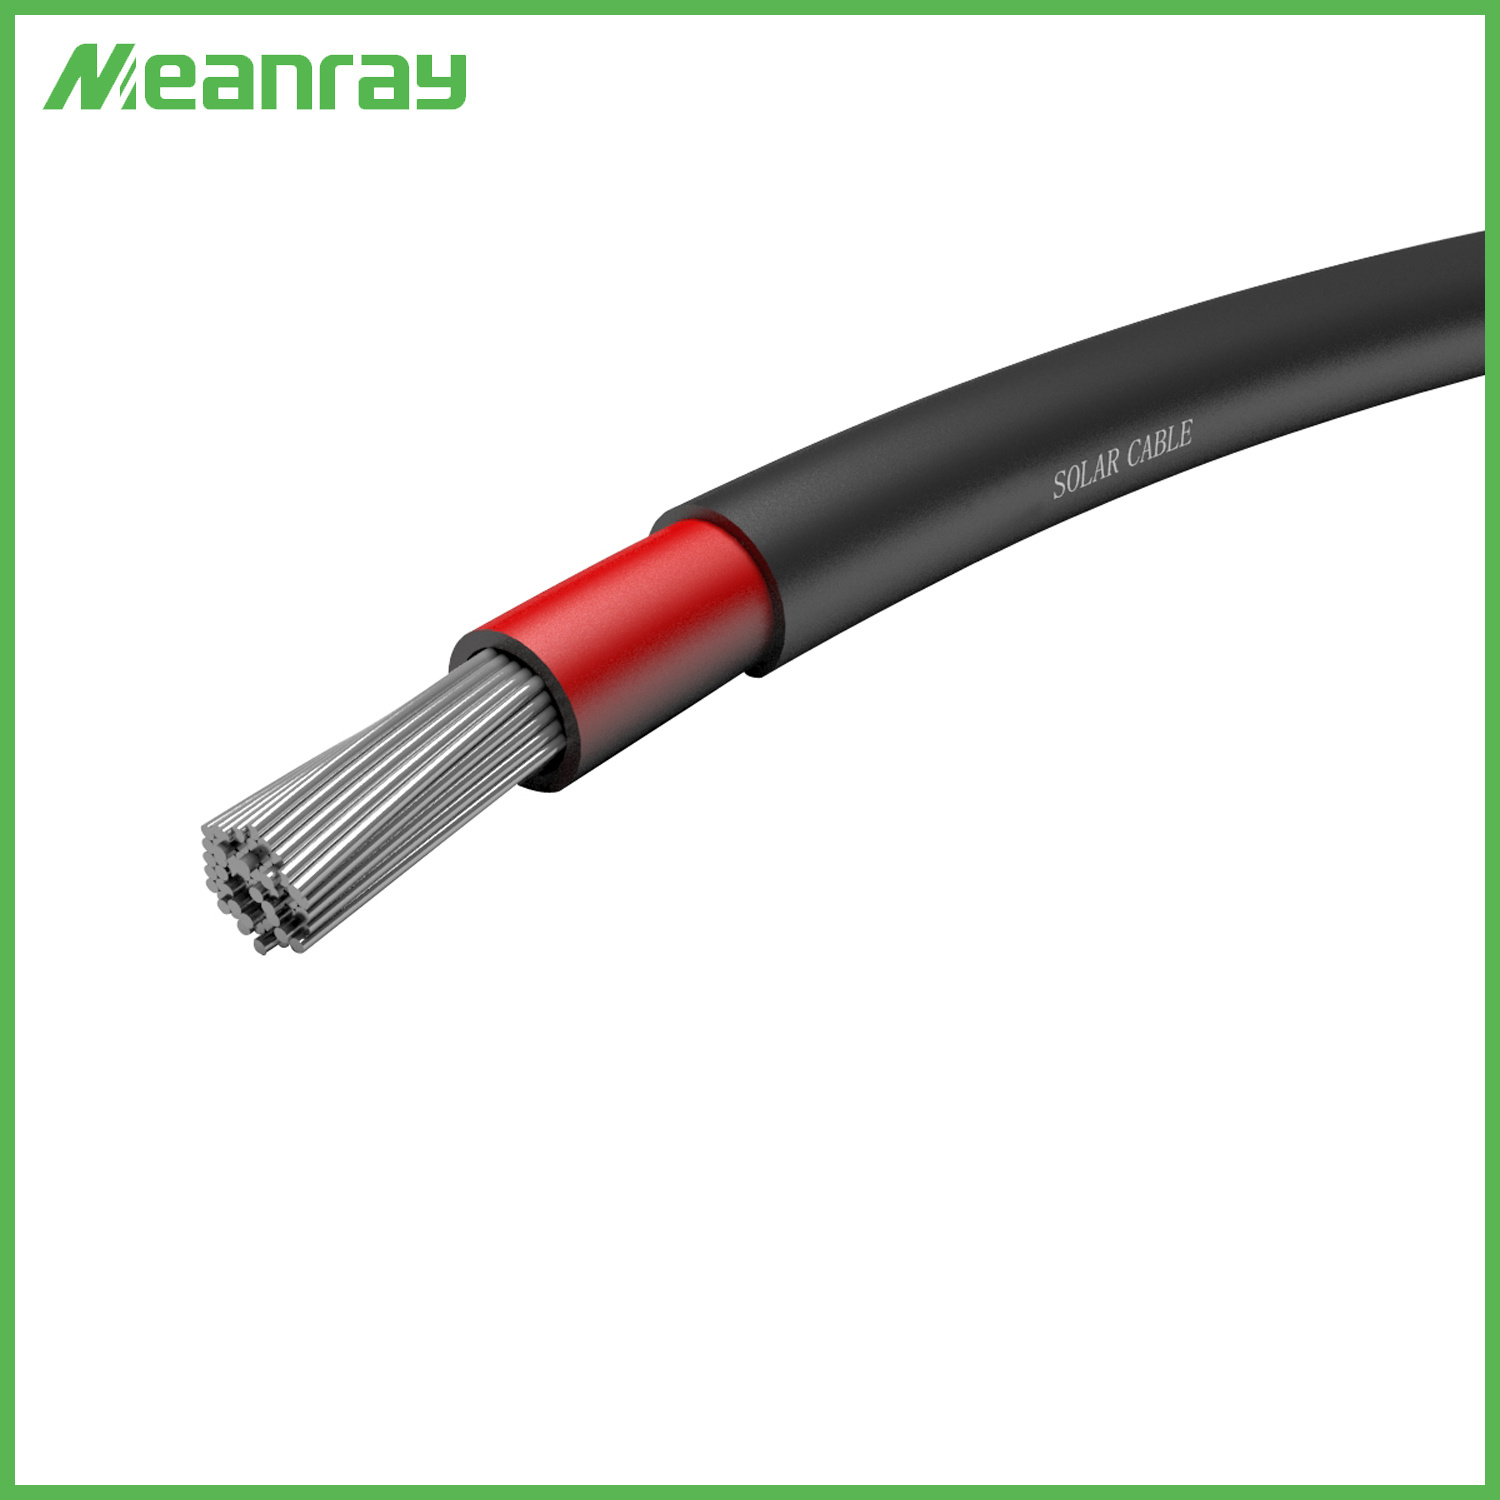 China UL Approved Cables Fire Resistant Cables 4mm Solar Cable ...